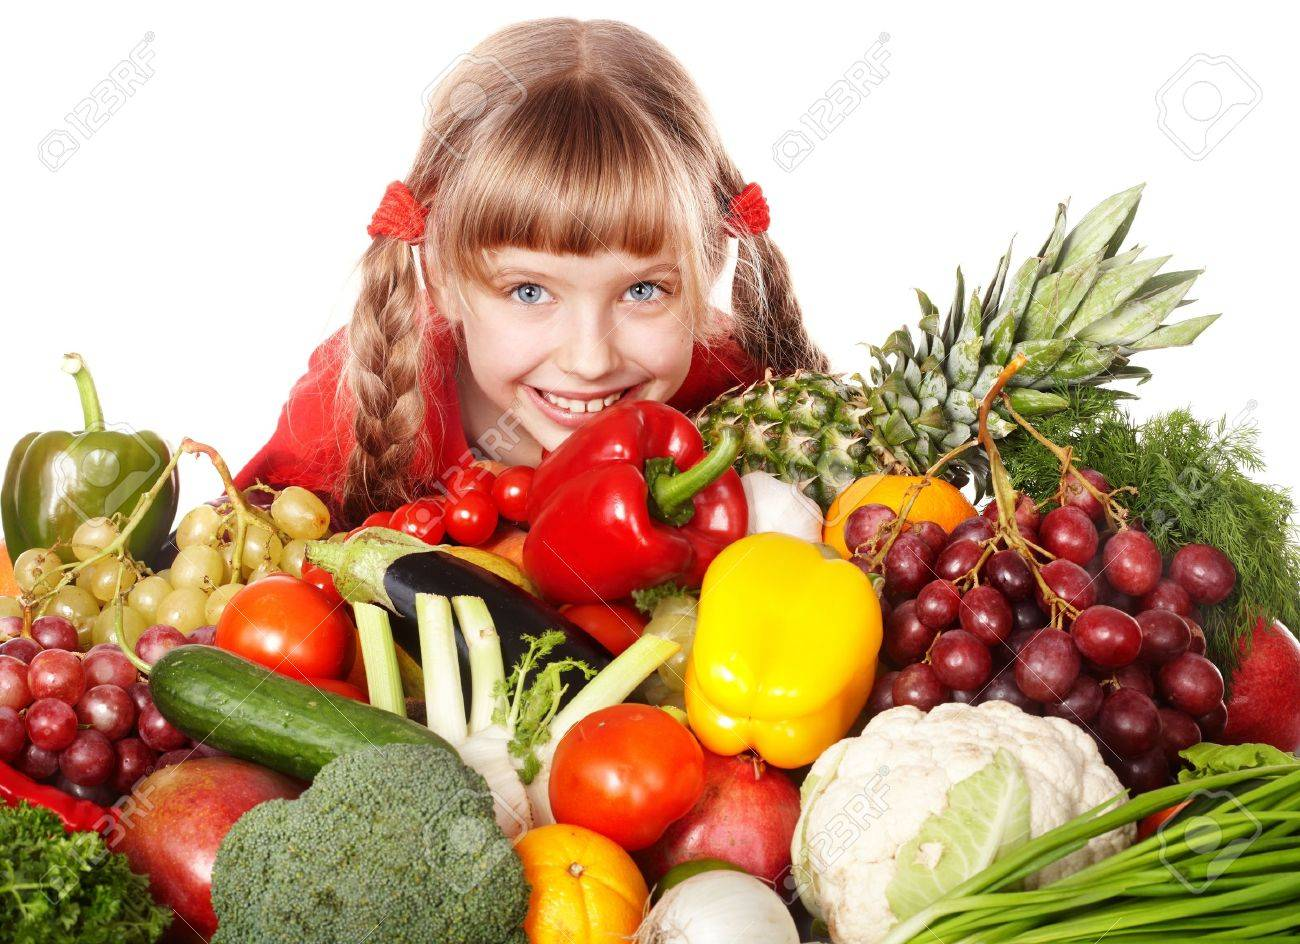 Child girl with group of vegetable and fruit. Isolated. Stock Photo - 6050135